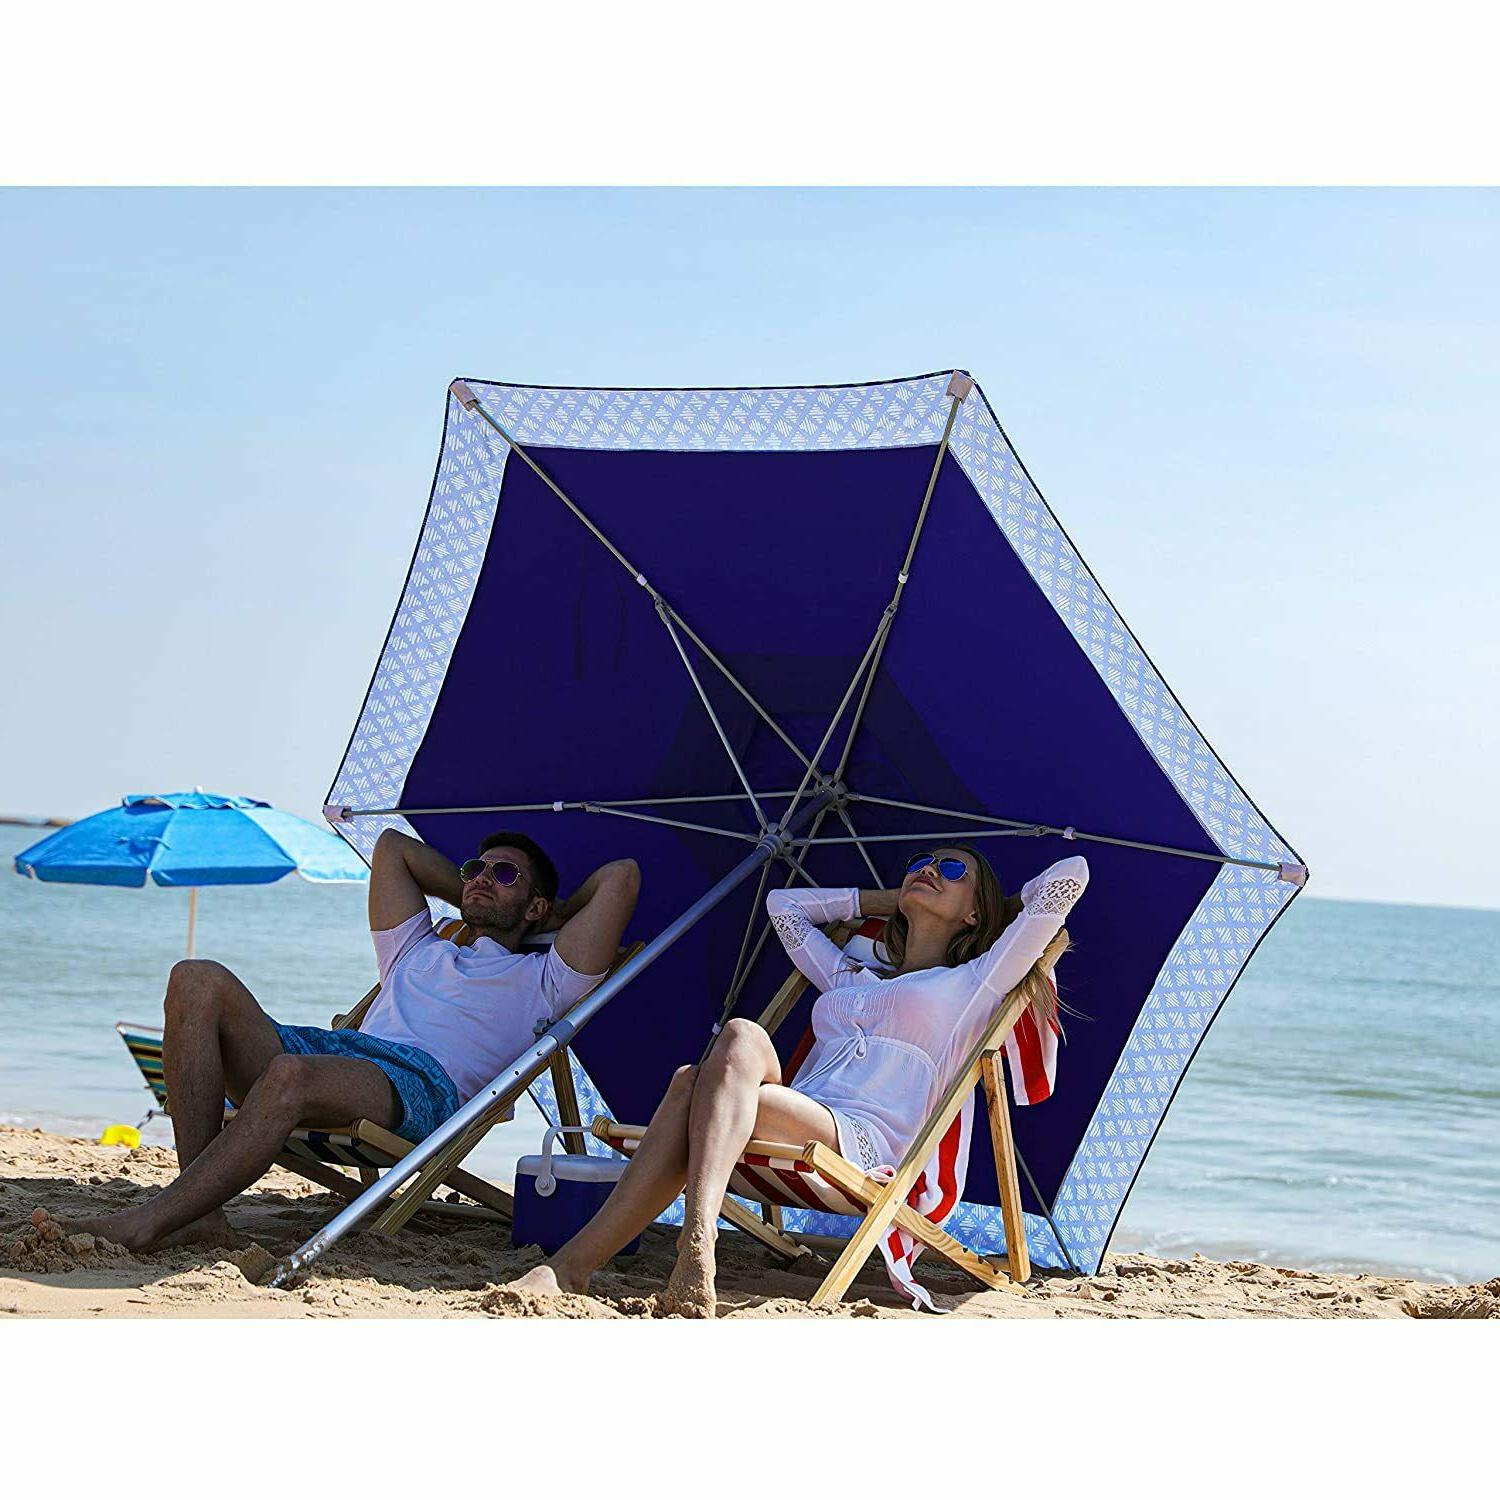 8ft patio beach umbrella with sand anchor